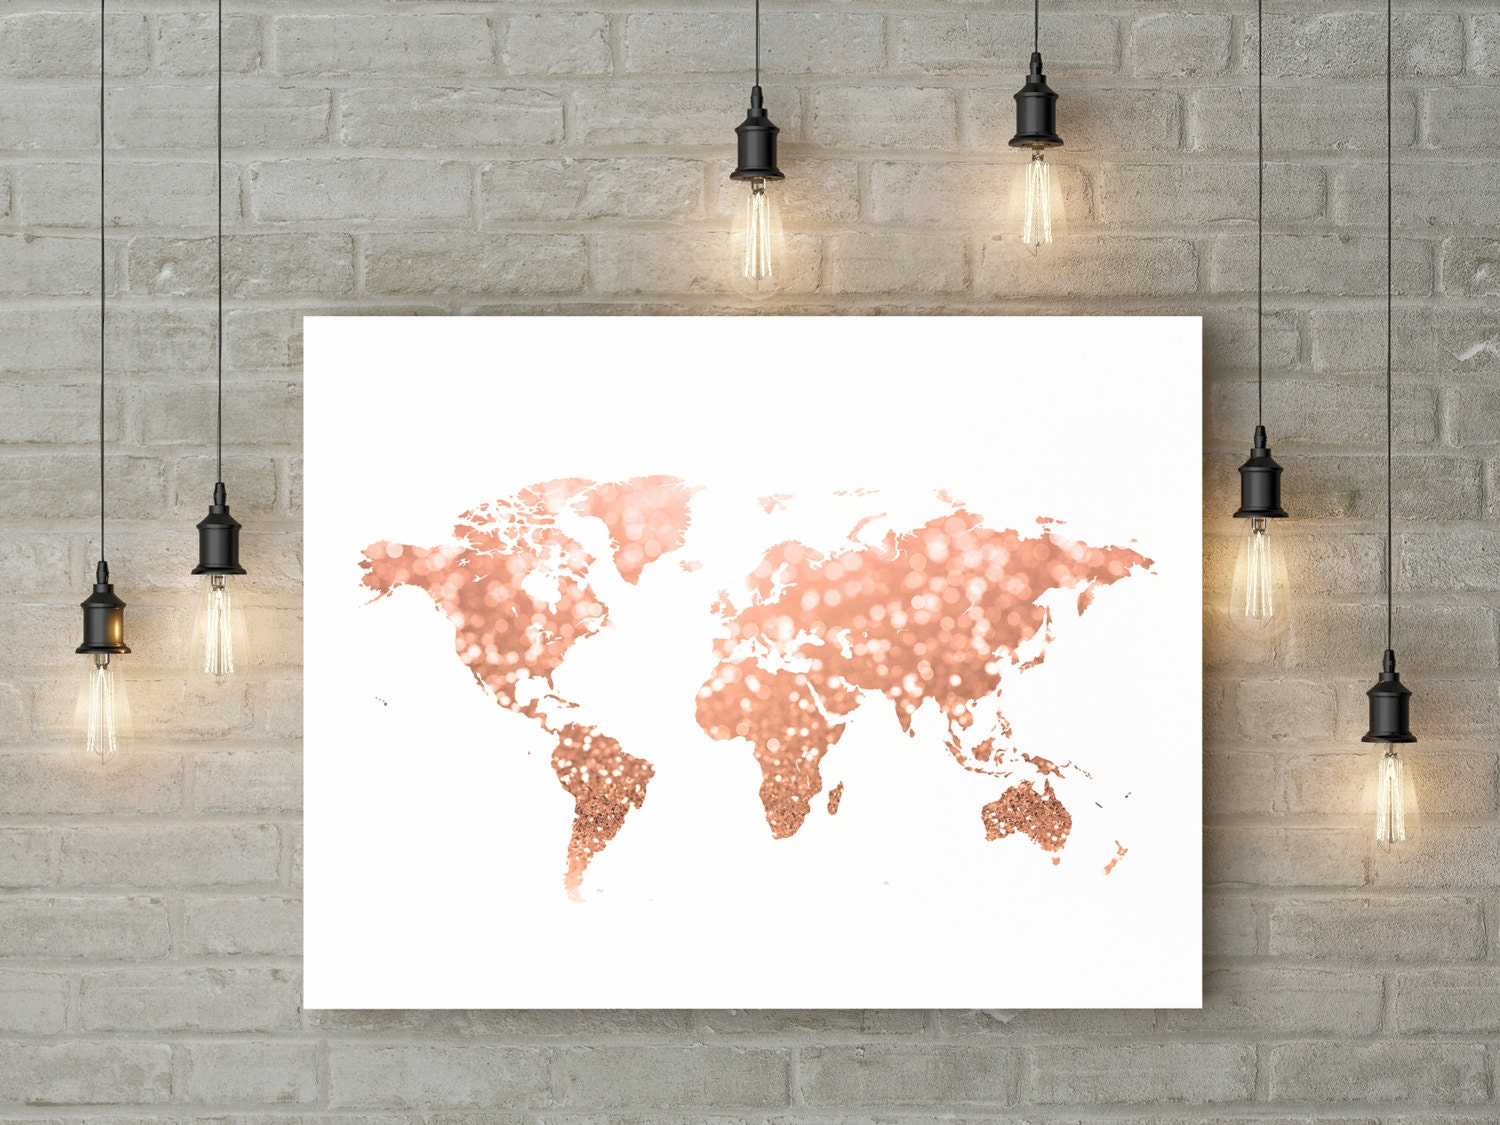 Rose gold world map print pink and gold map art travel decor for Decoration rose gold